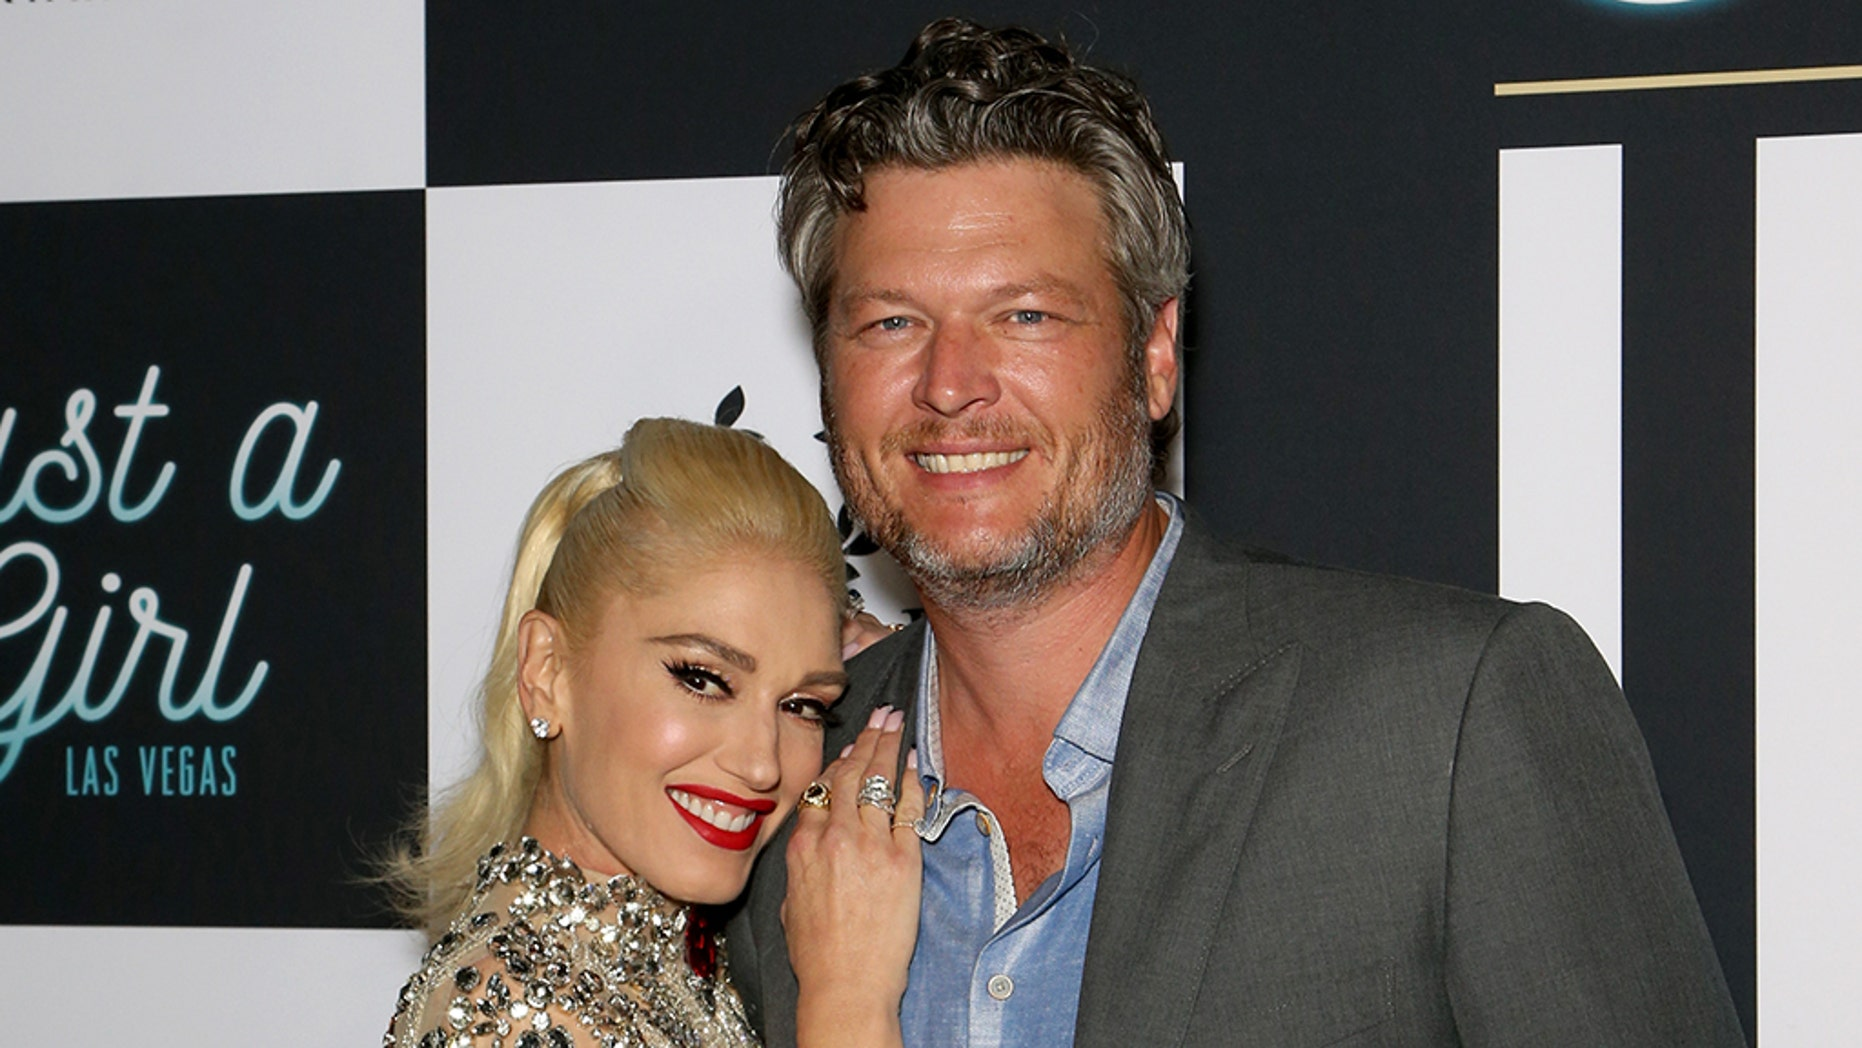 """Singer Gwen Stefani (L) and recording artist Blake Shelton attend the grand opening of the """"Gwen Stefani - Just a Girl"""" residency at Planet Hollywood Resort and Casino."""